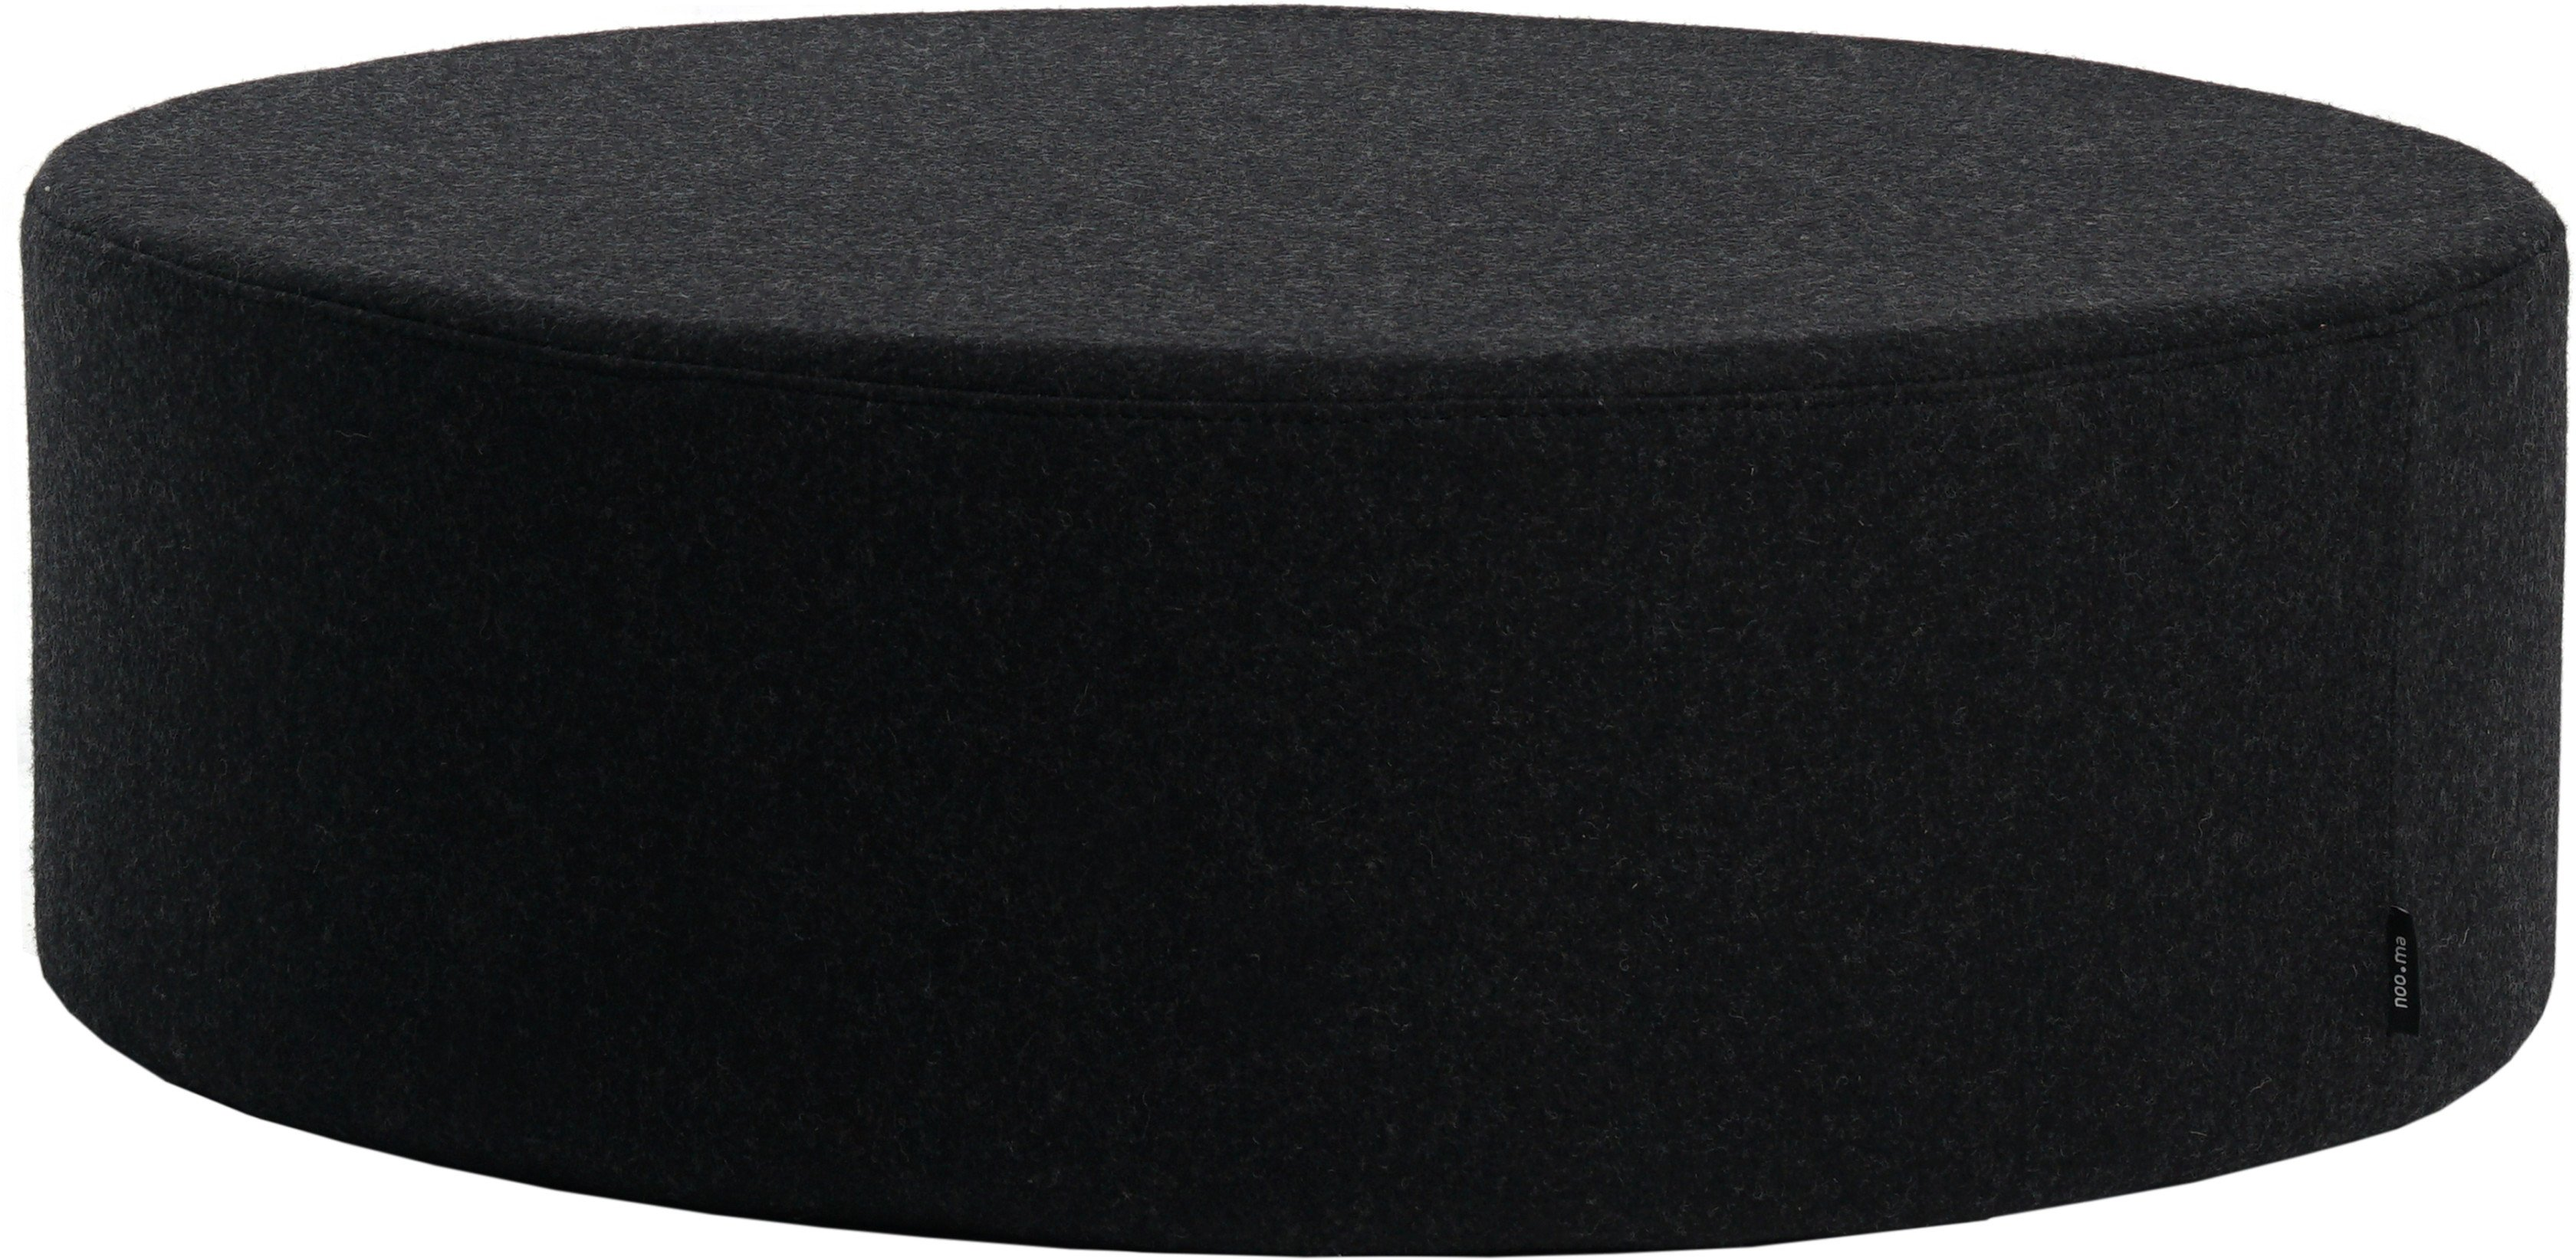 Folk Pouf Black Wide, noo.ma